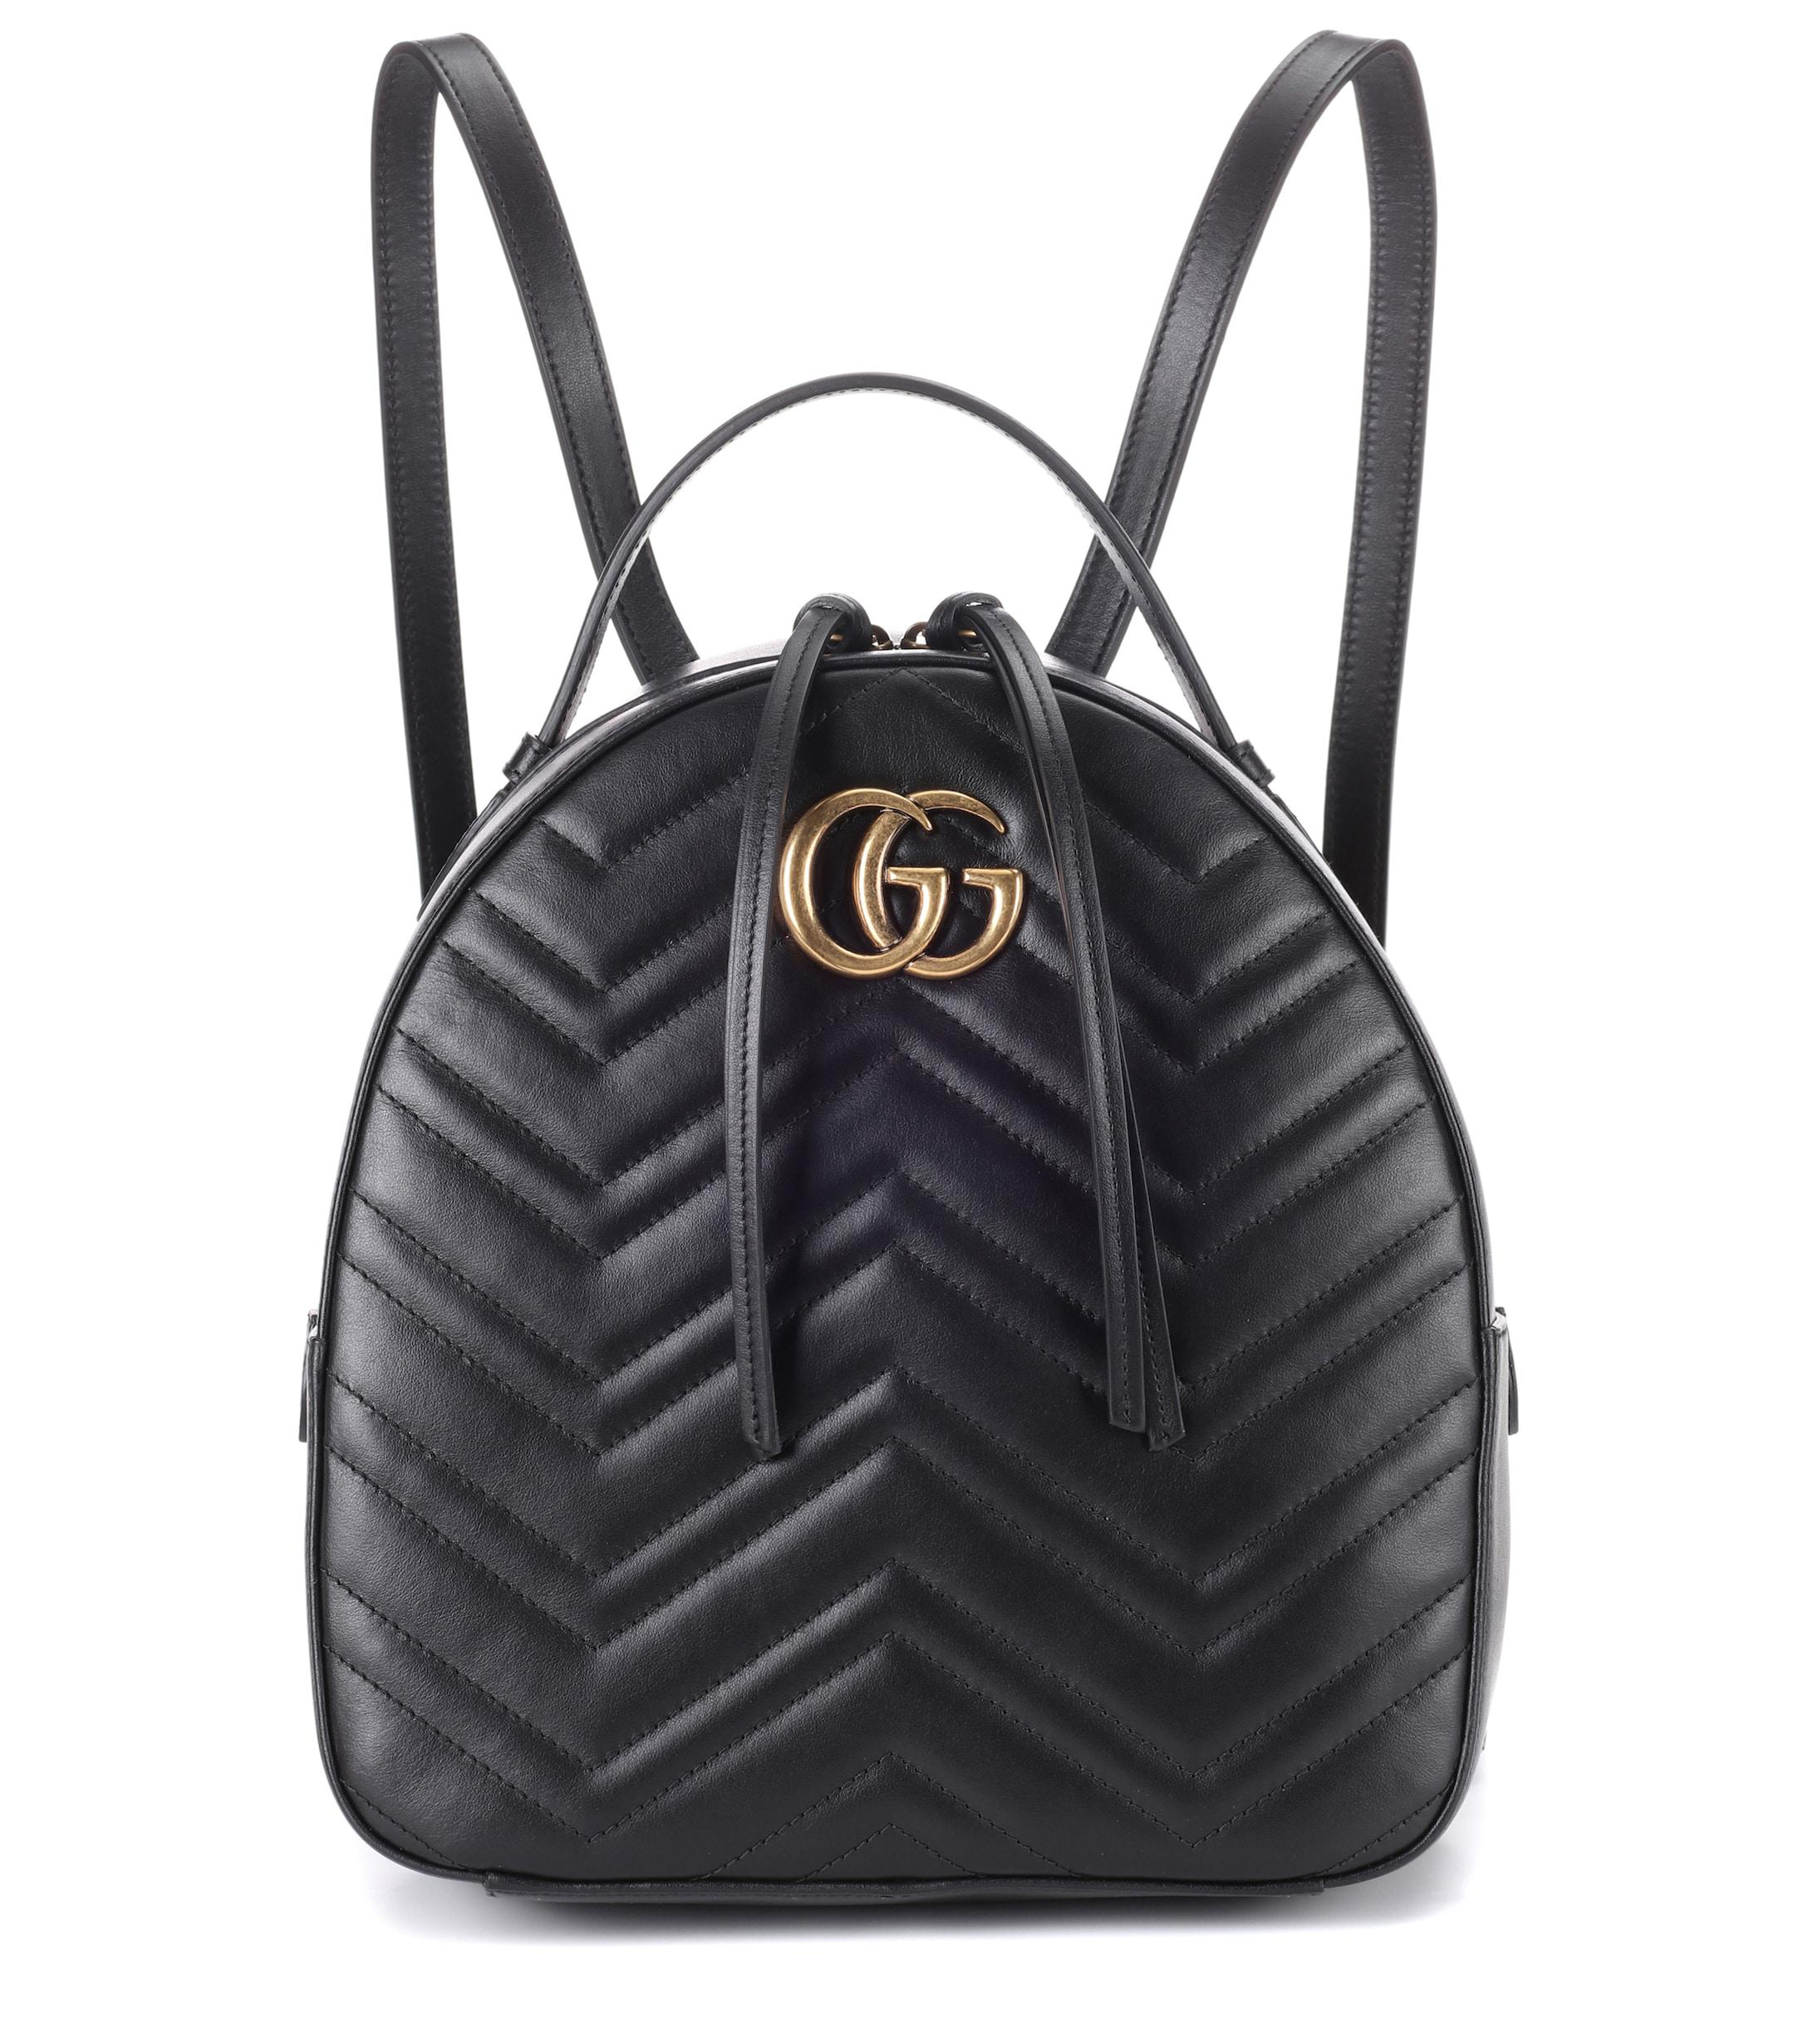 729a0bbac618 Gucci GG Marmont Matelassé Leather Backpack in Black - Lyst